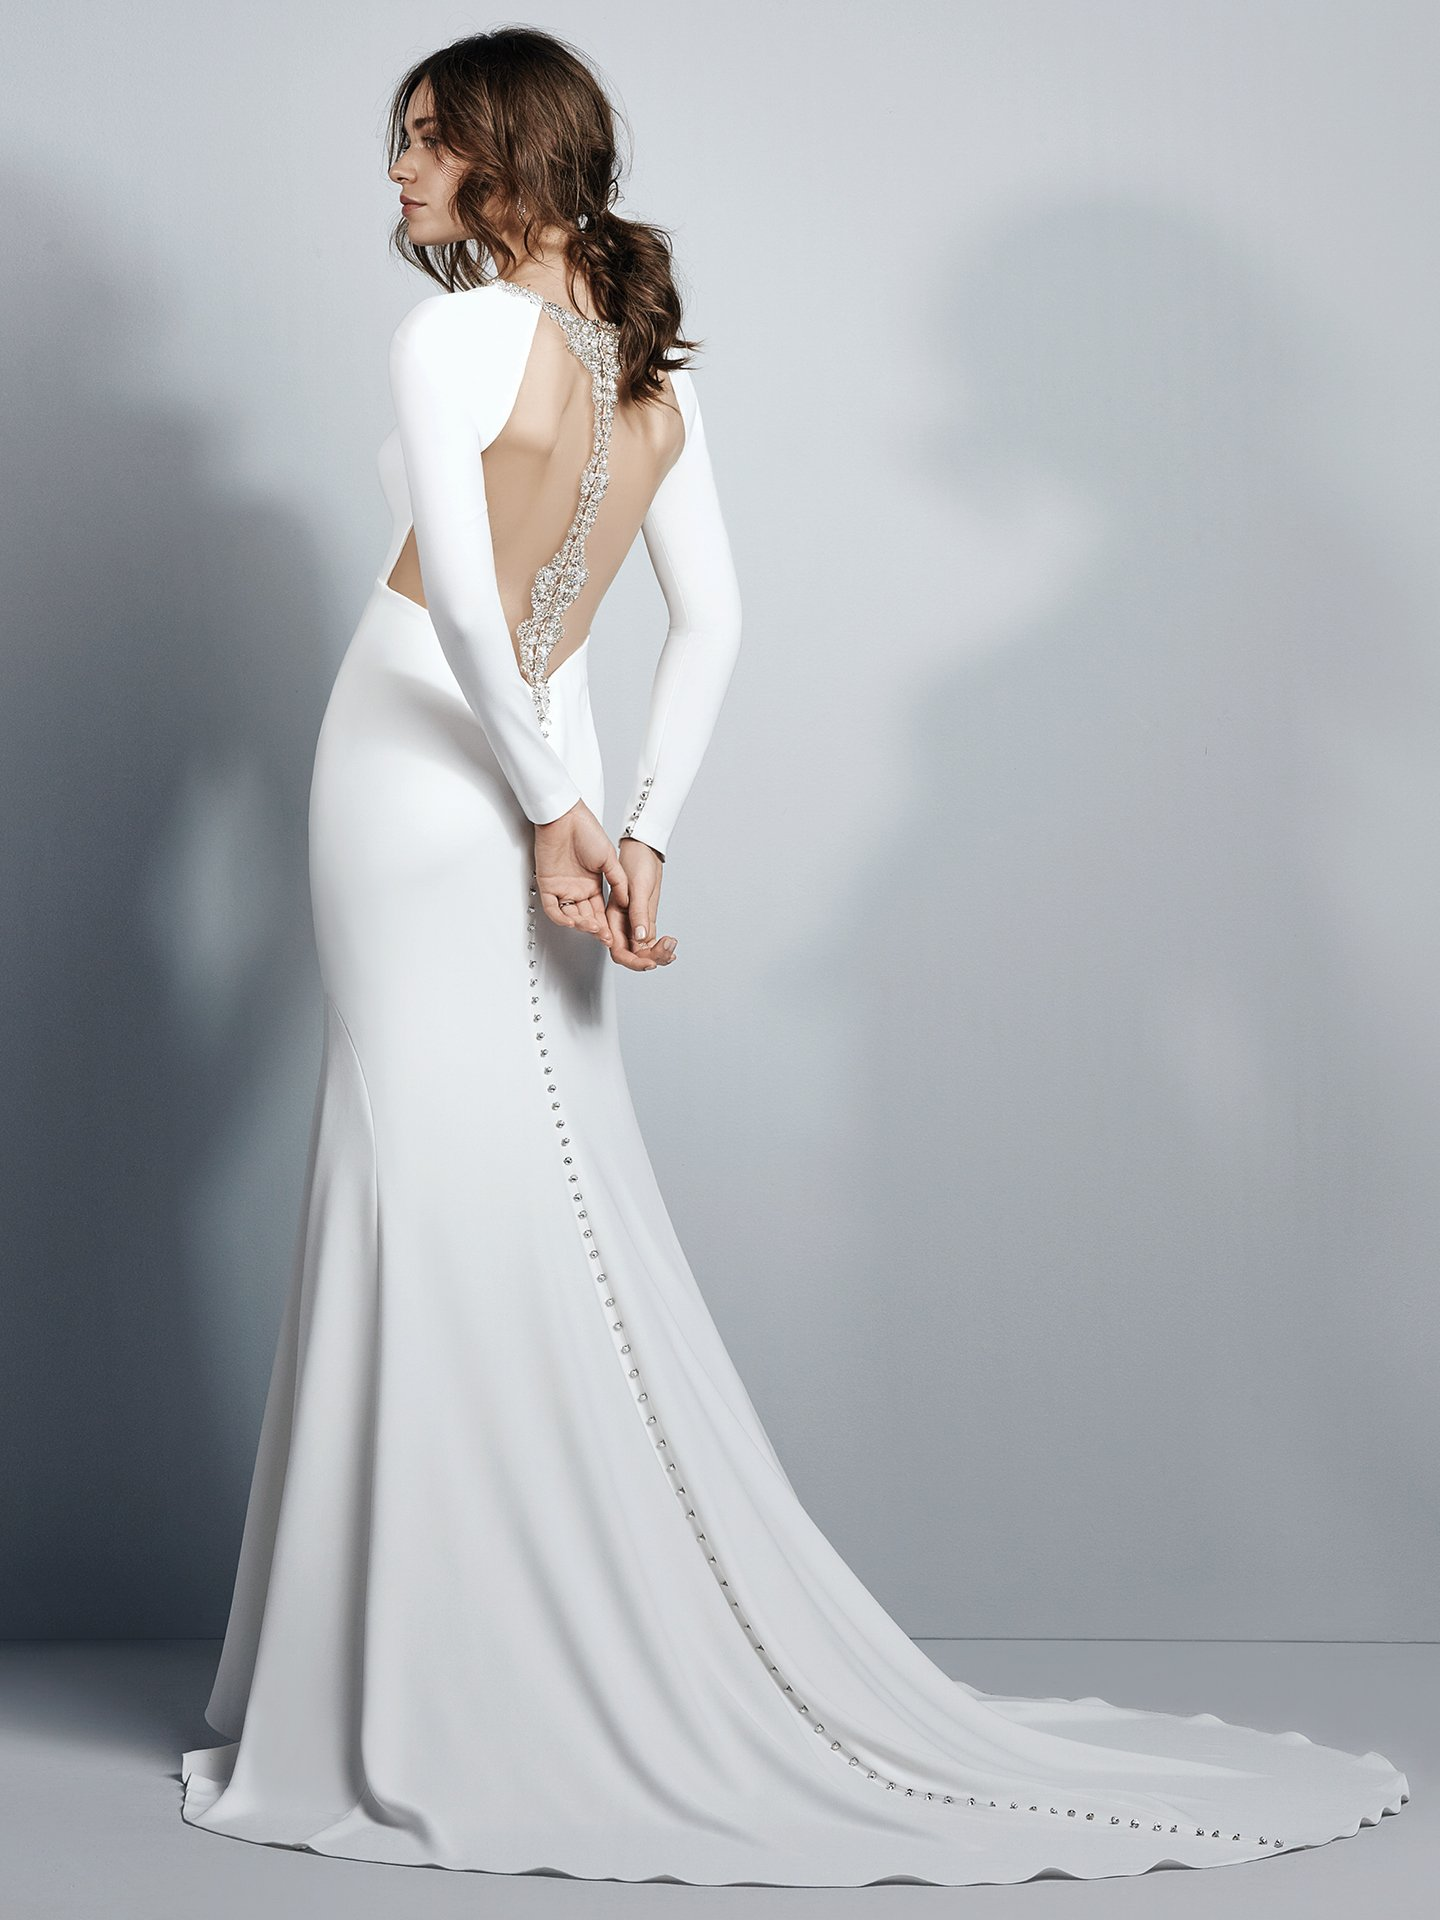 13 Gorgeous Statement-Back Gowns for the Stylish Bride - Arleigh wedding dress with statement back by Sottero and Midgley